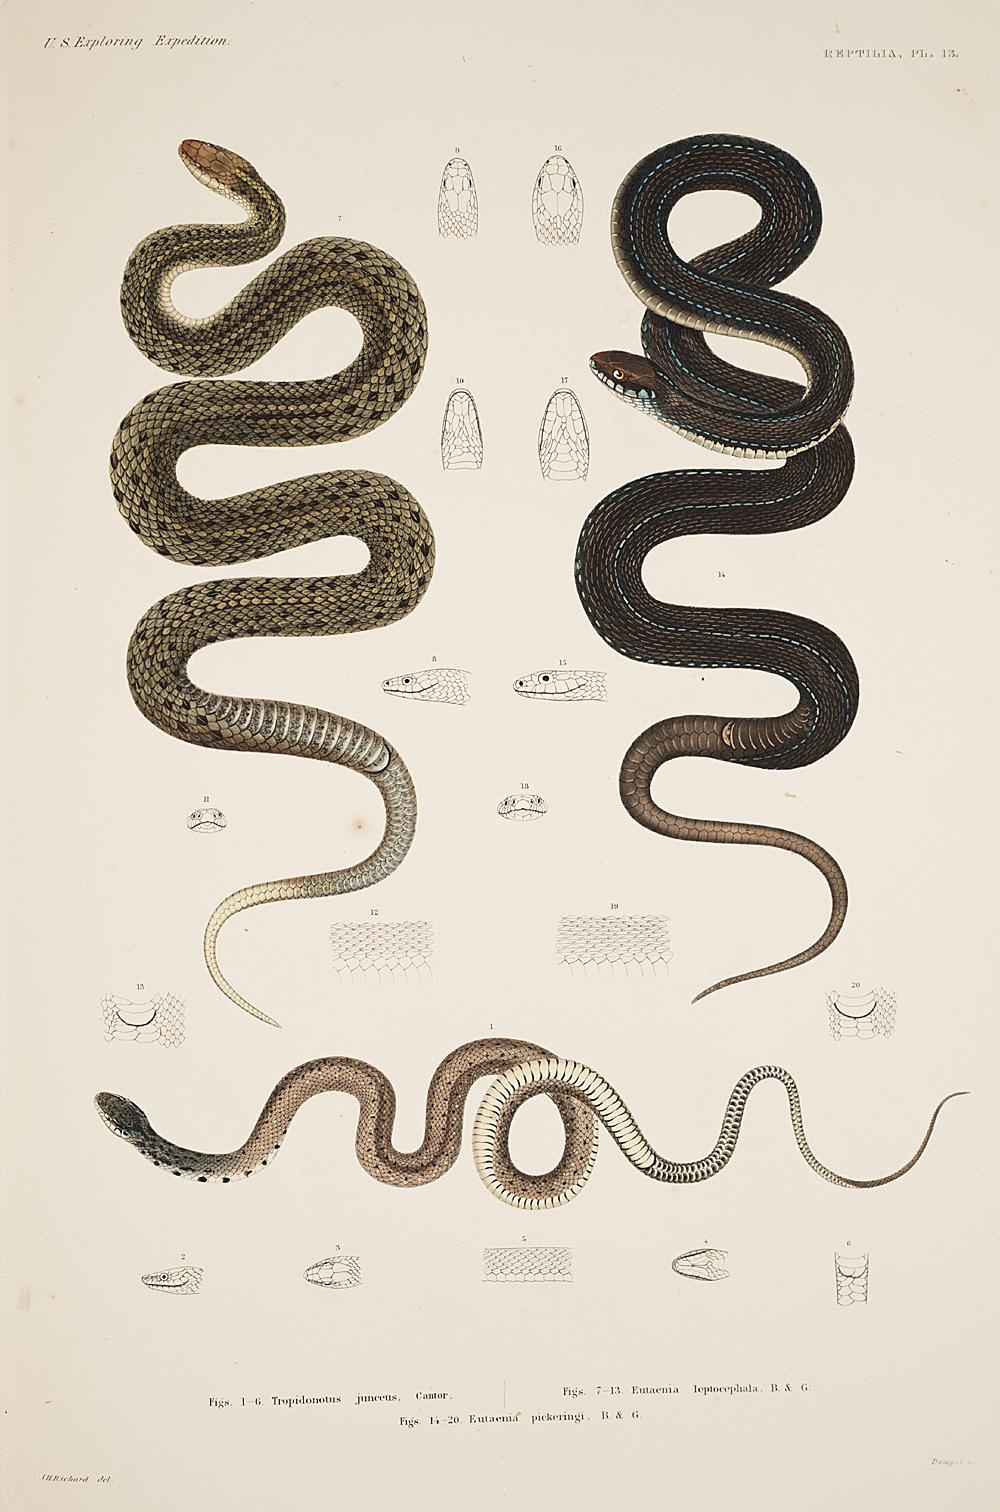 Reptilia, Plate 13,  Image number:sil19-31-045b